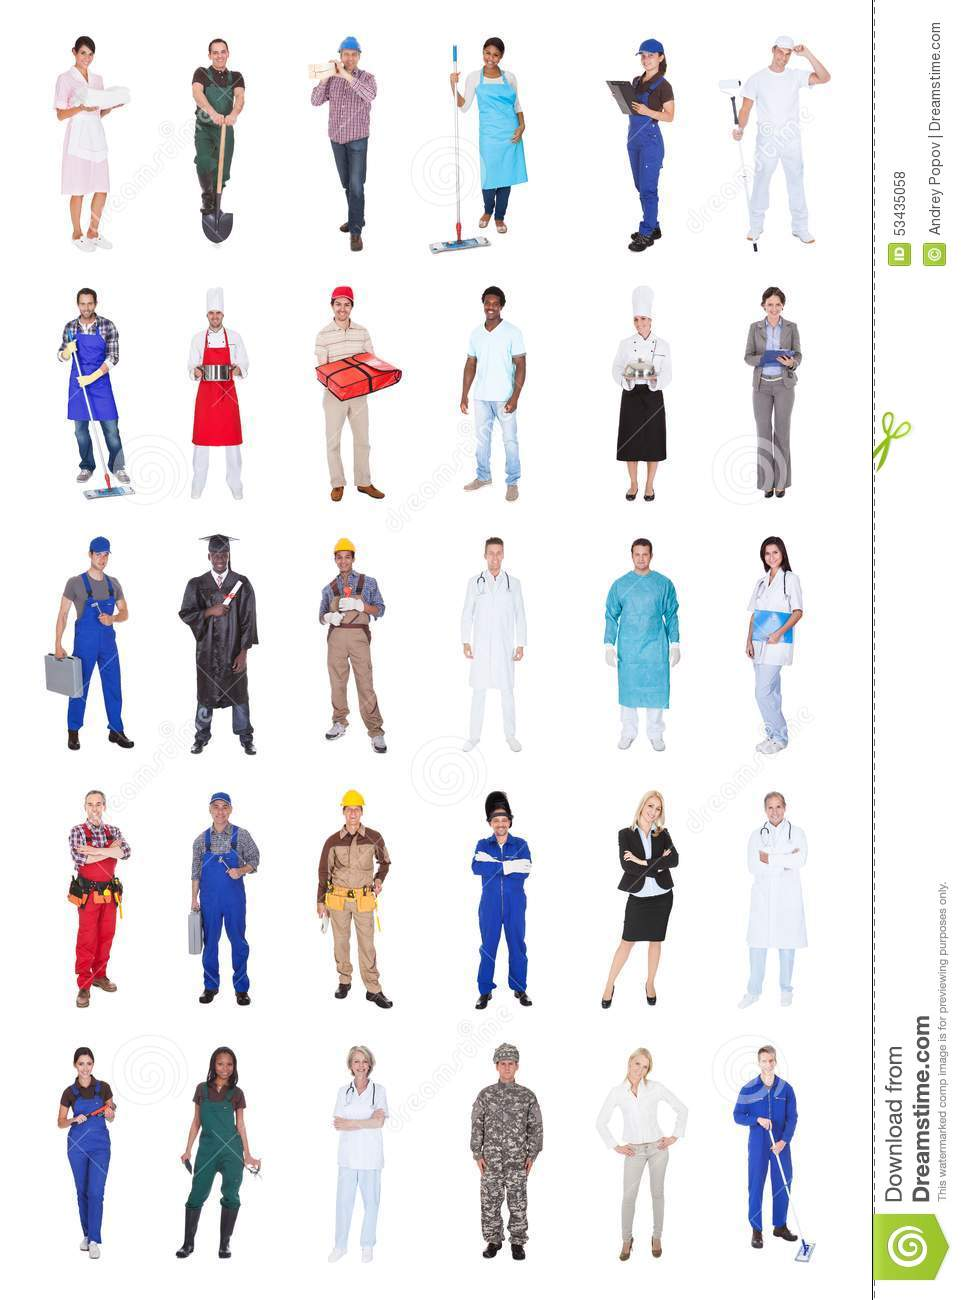 People Occupations Jobs And Community At: Multiethnic People With Various Occupations Stock Photo